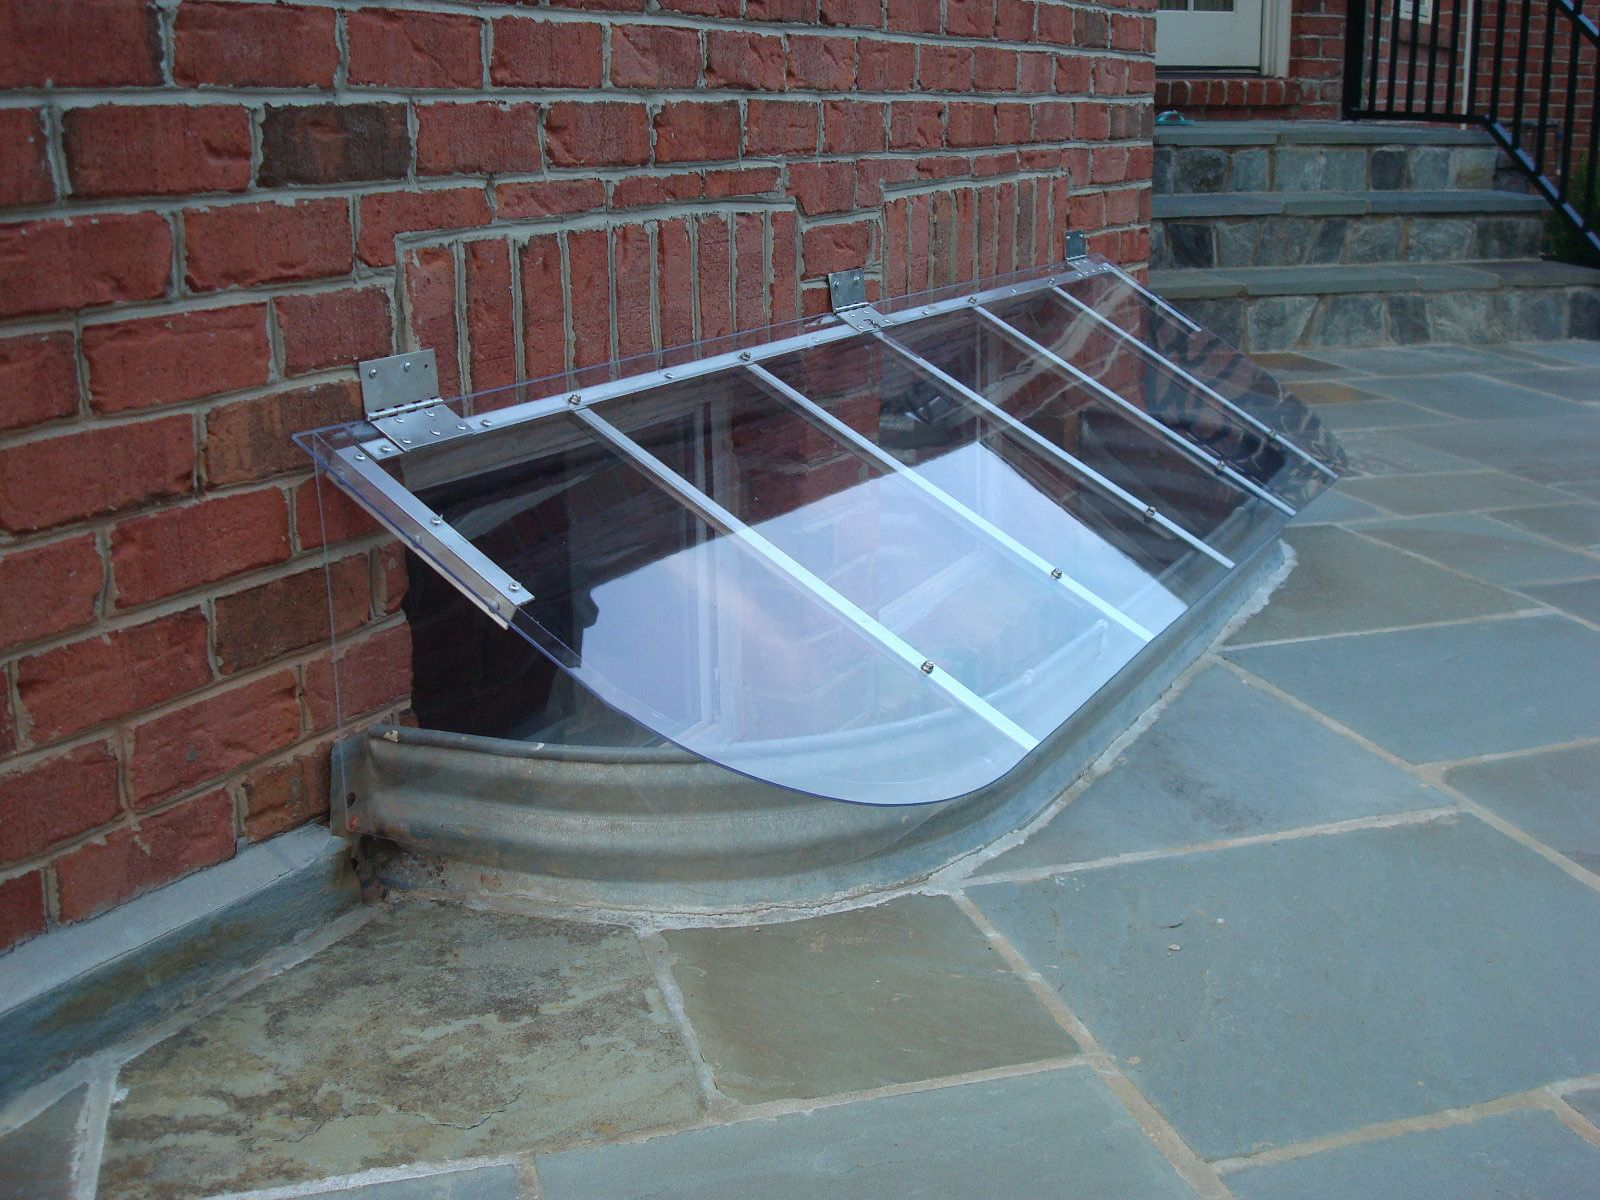 brick basement window wells. Slanted Window Well Cover To Repel Rain, Snow And DebrisMade Brick Basement Wells